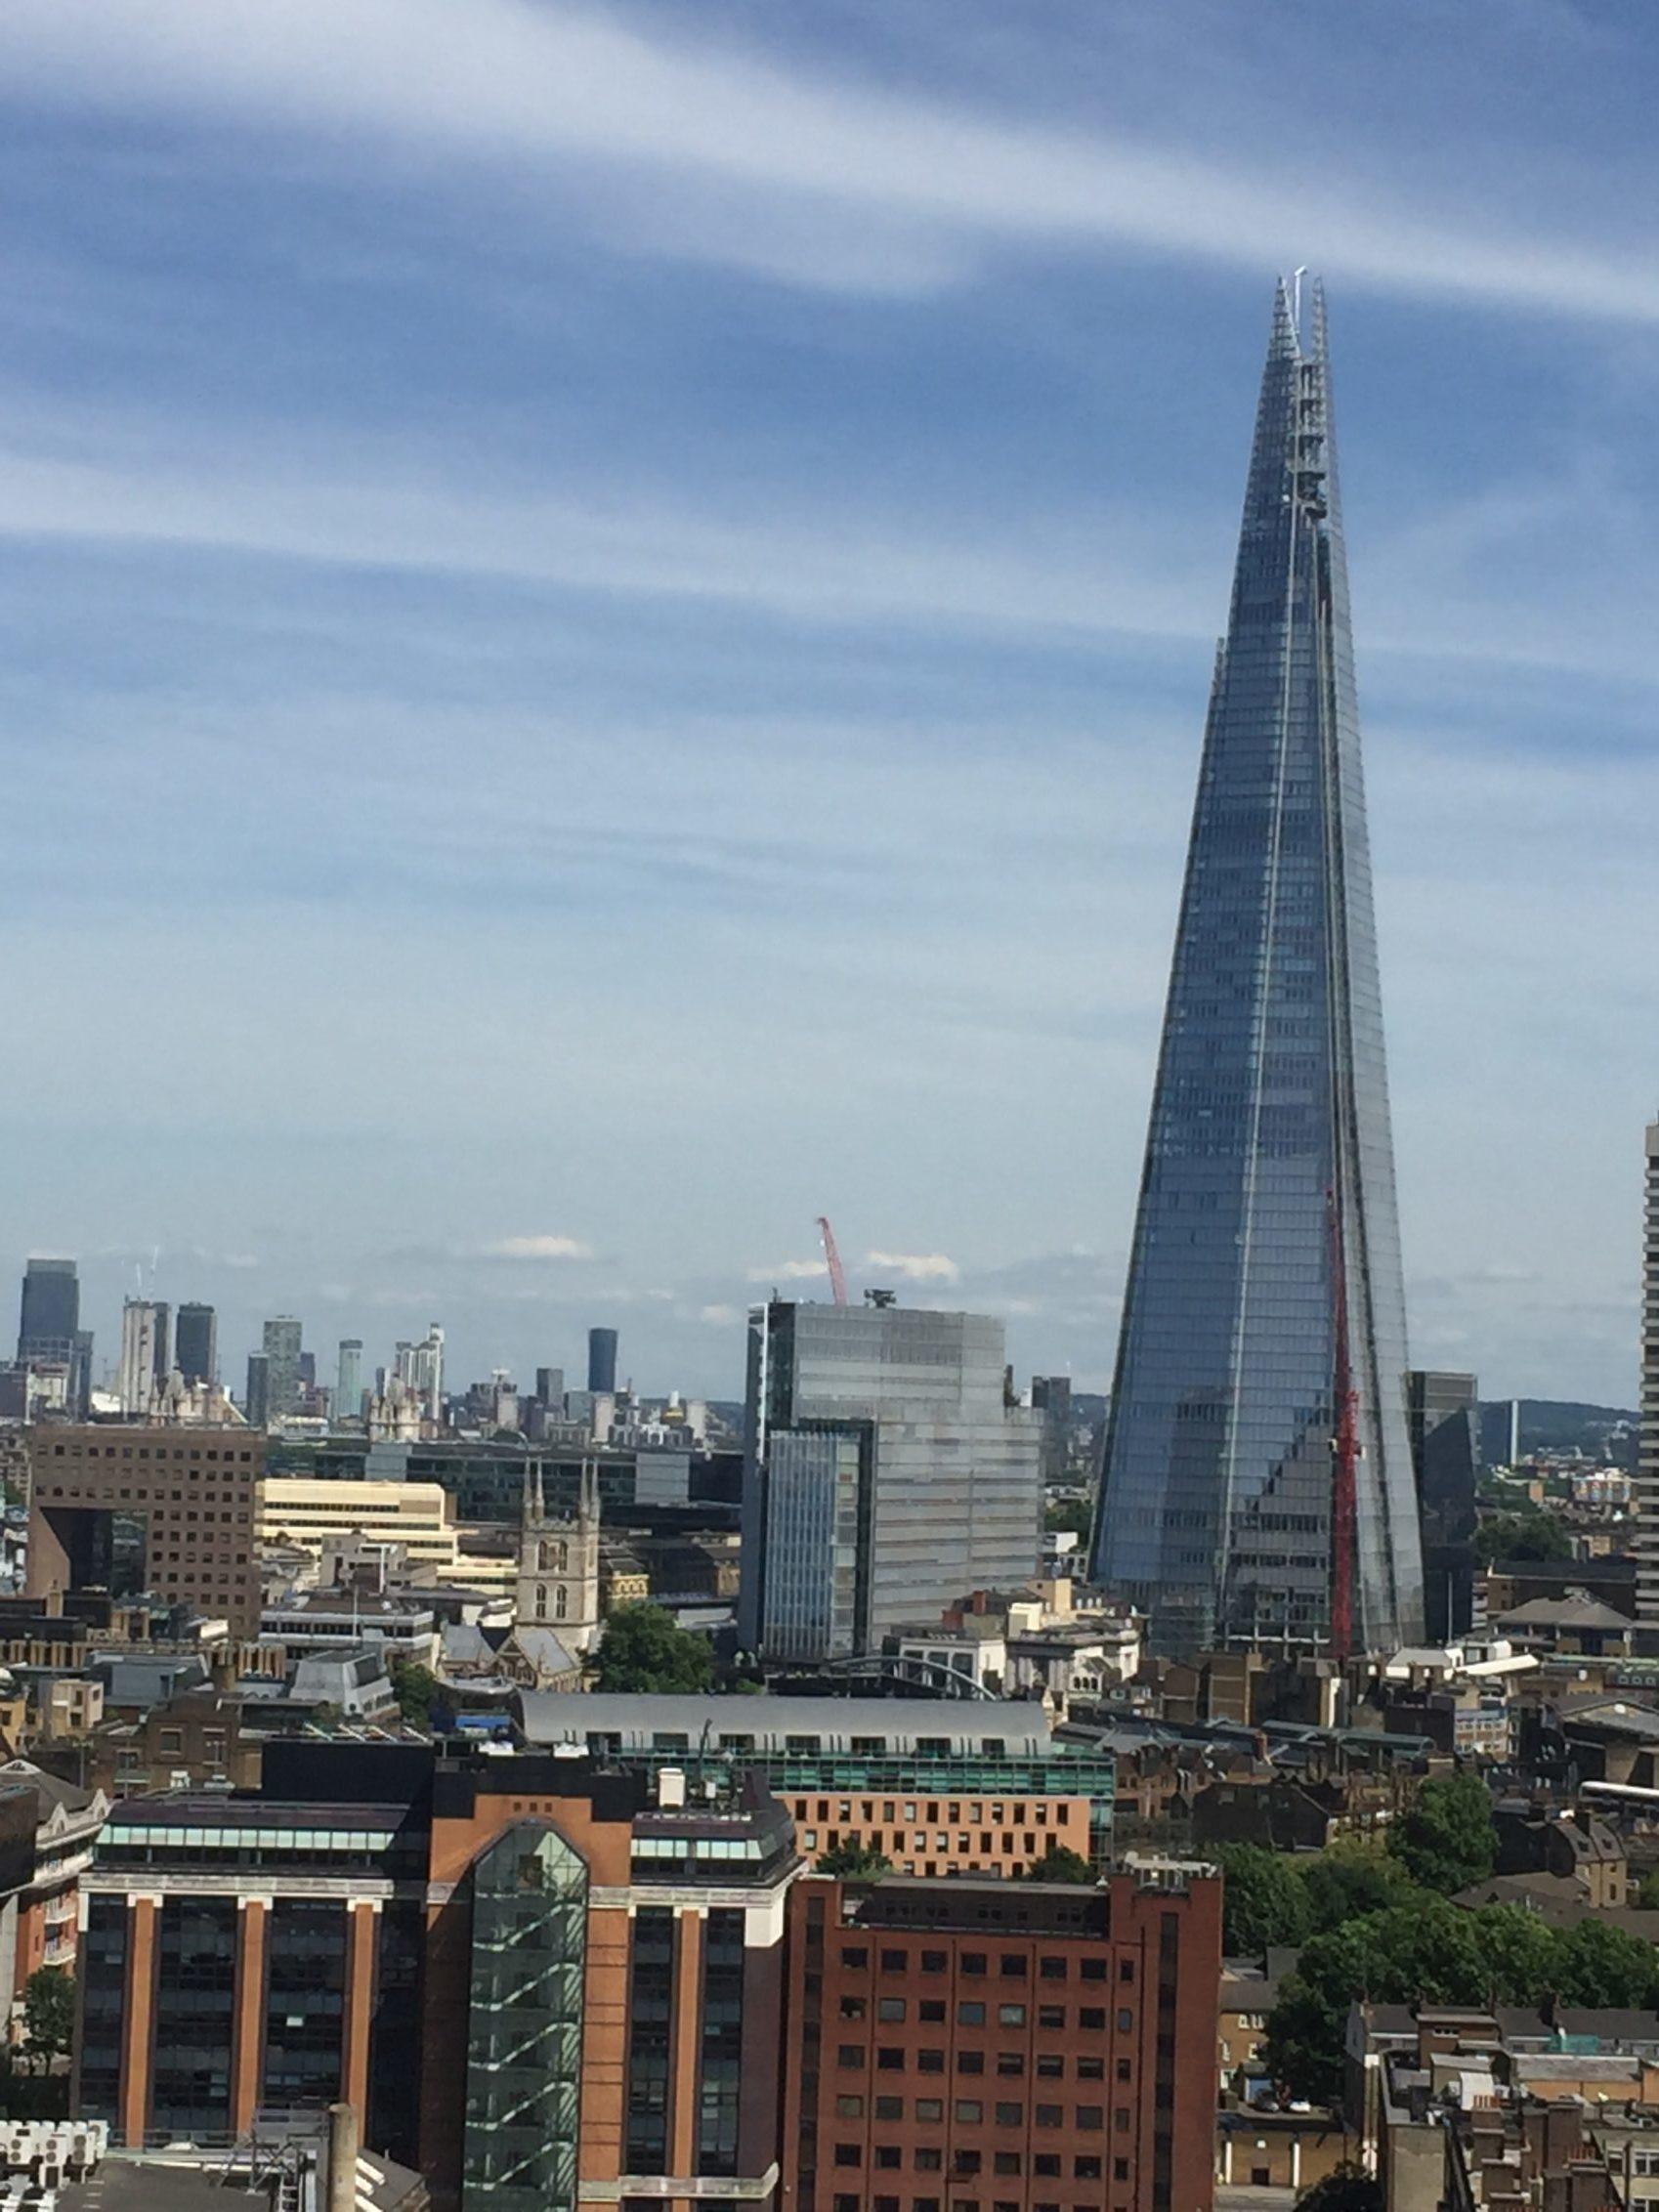 View of London with the Shard dominating the scene.